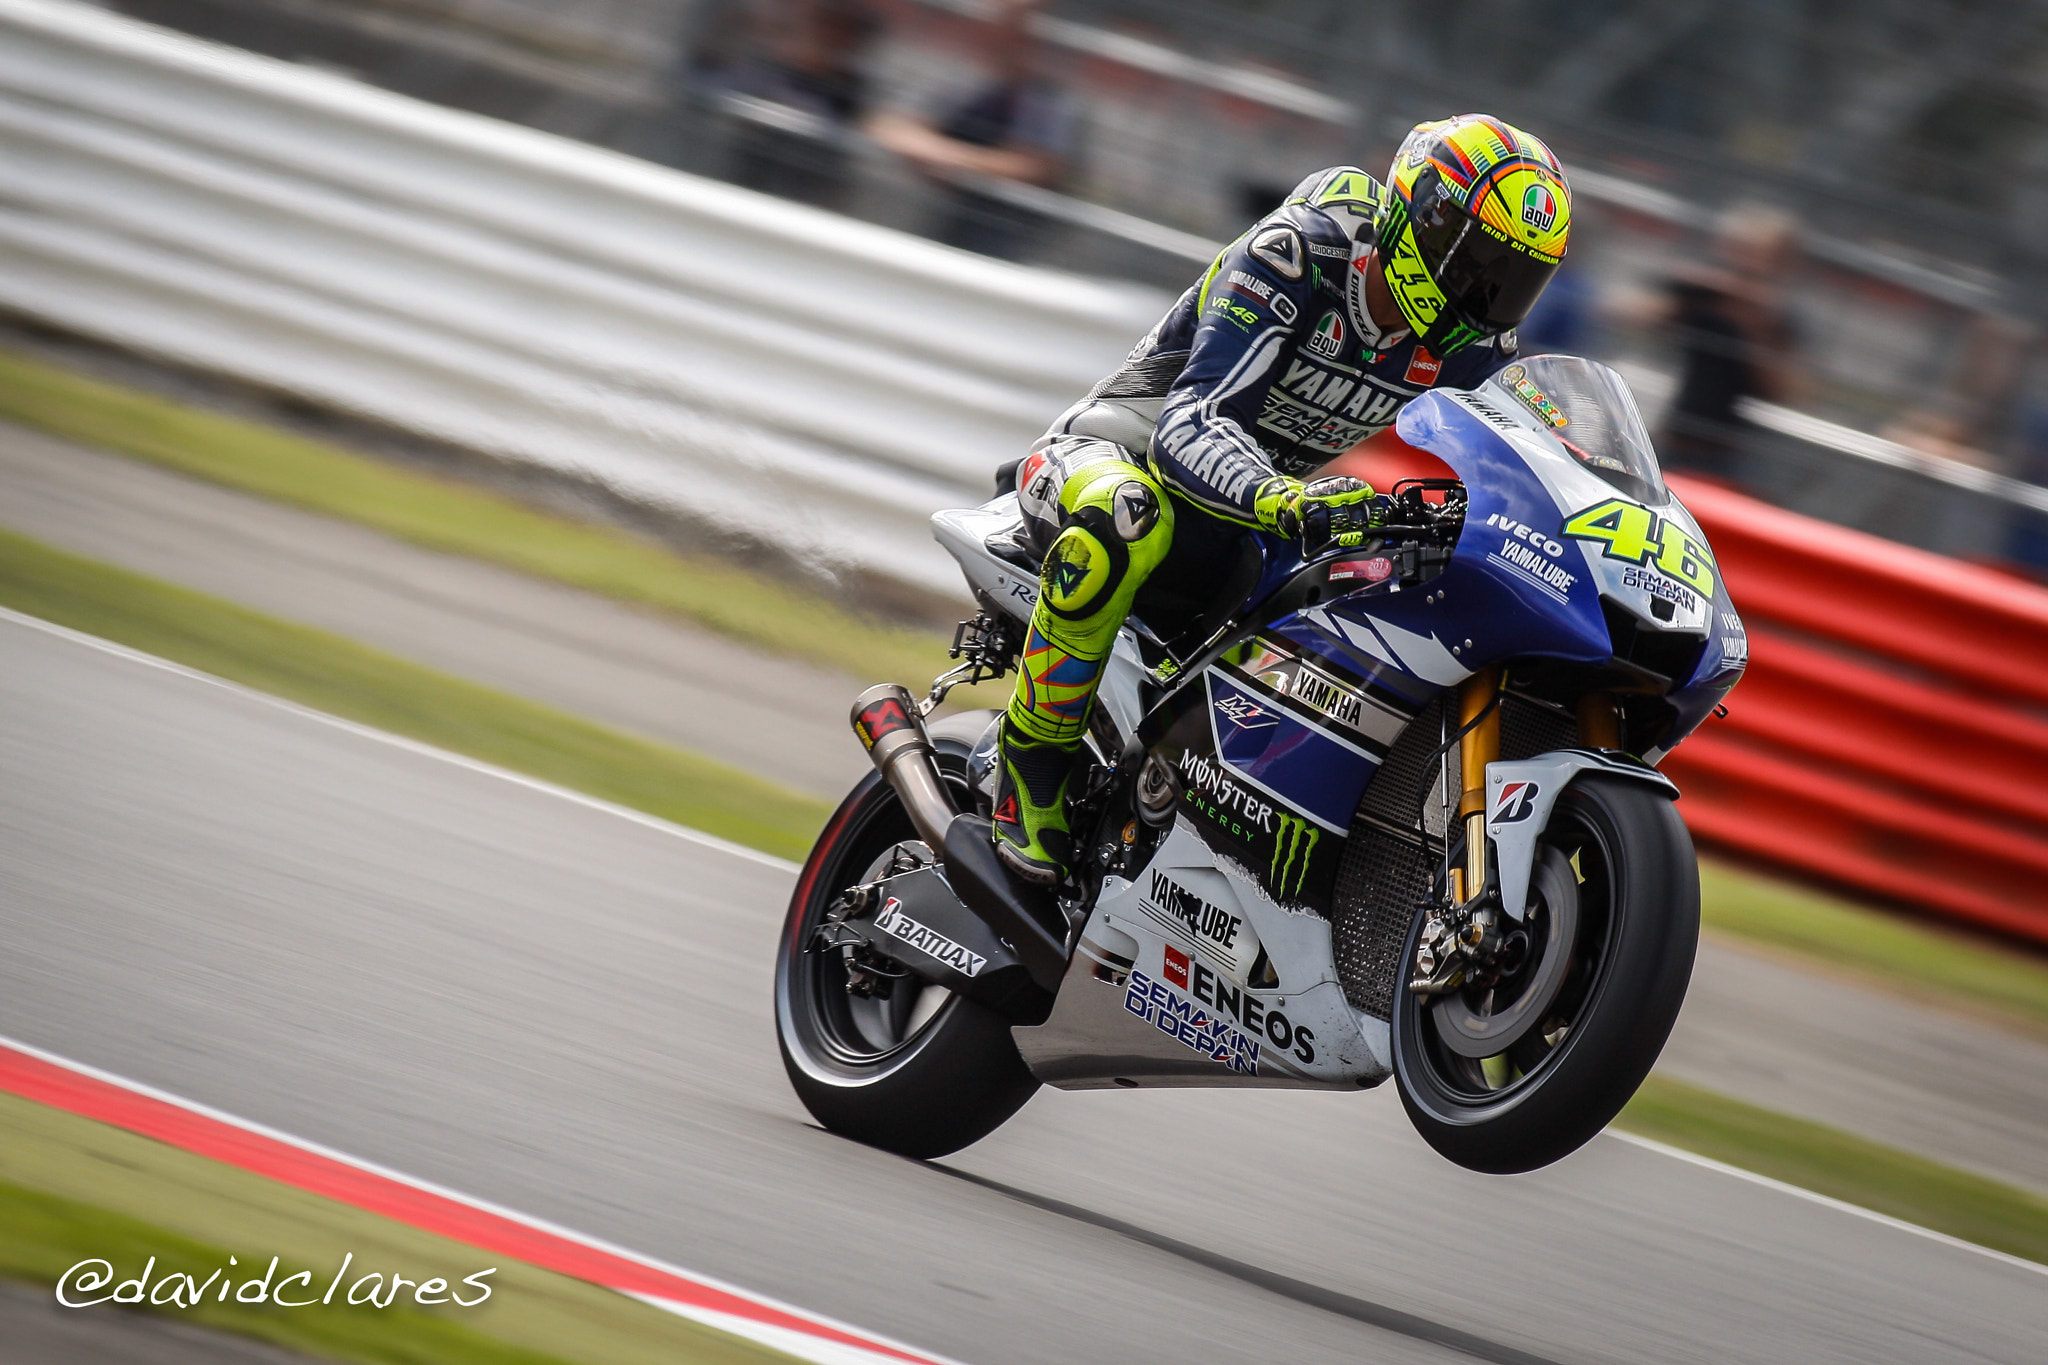 Photograph Valentino Rossi REF. 0221 by David Clares on 500px